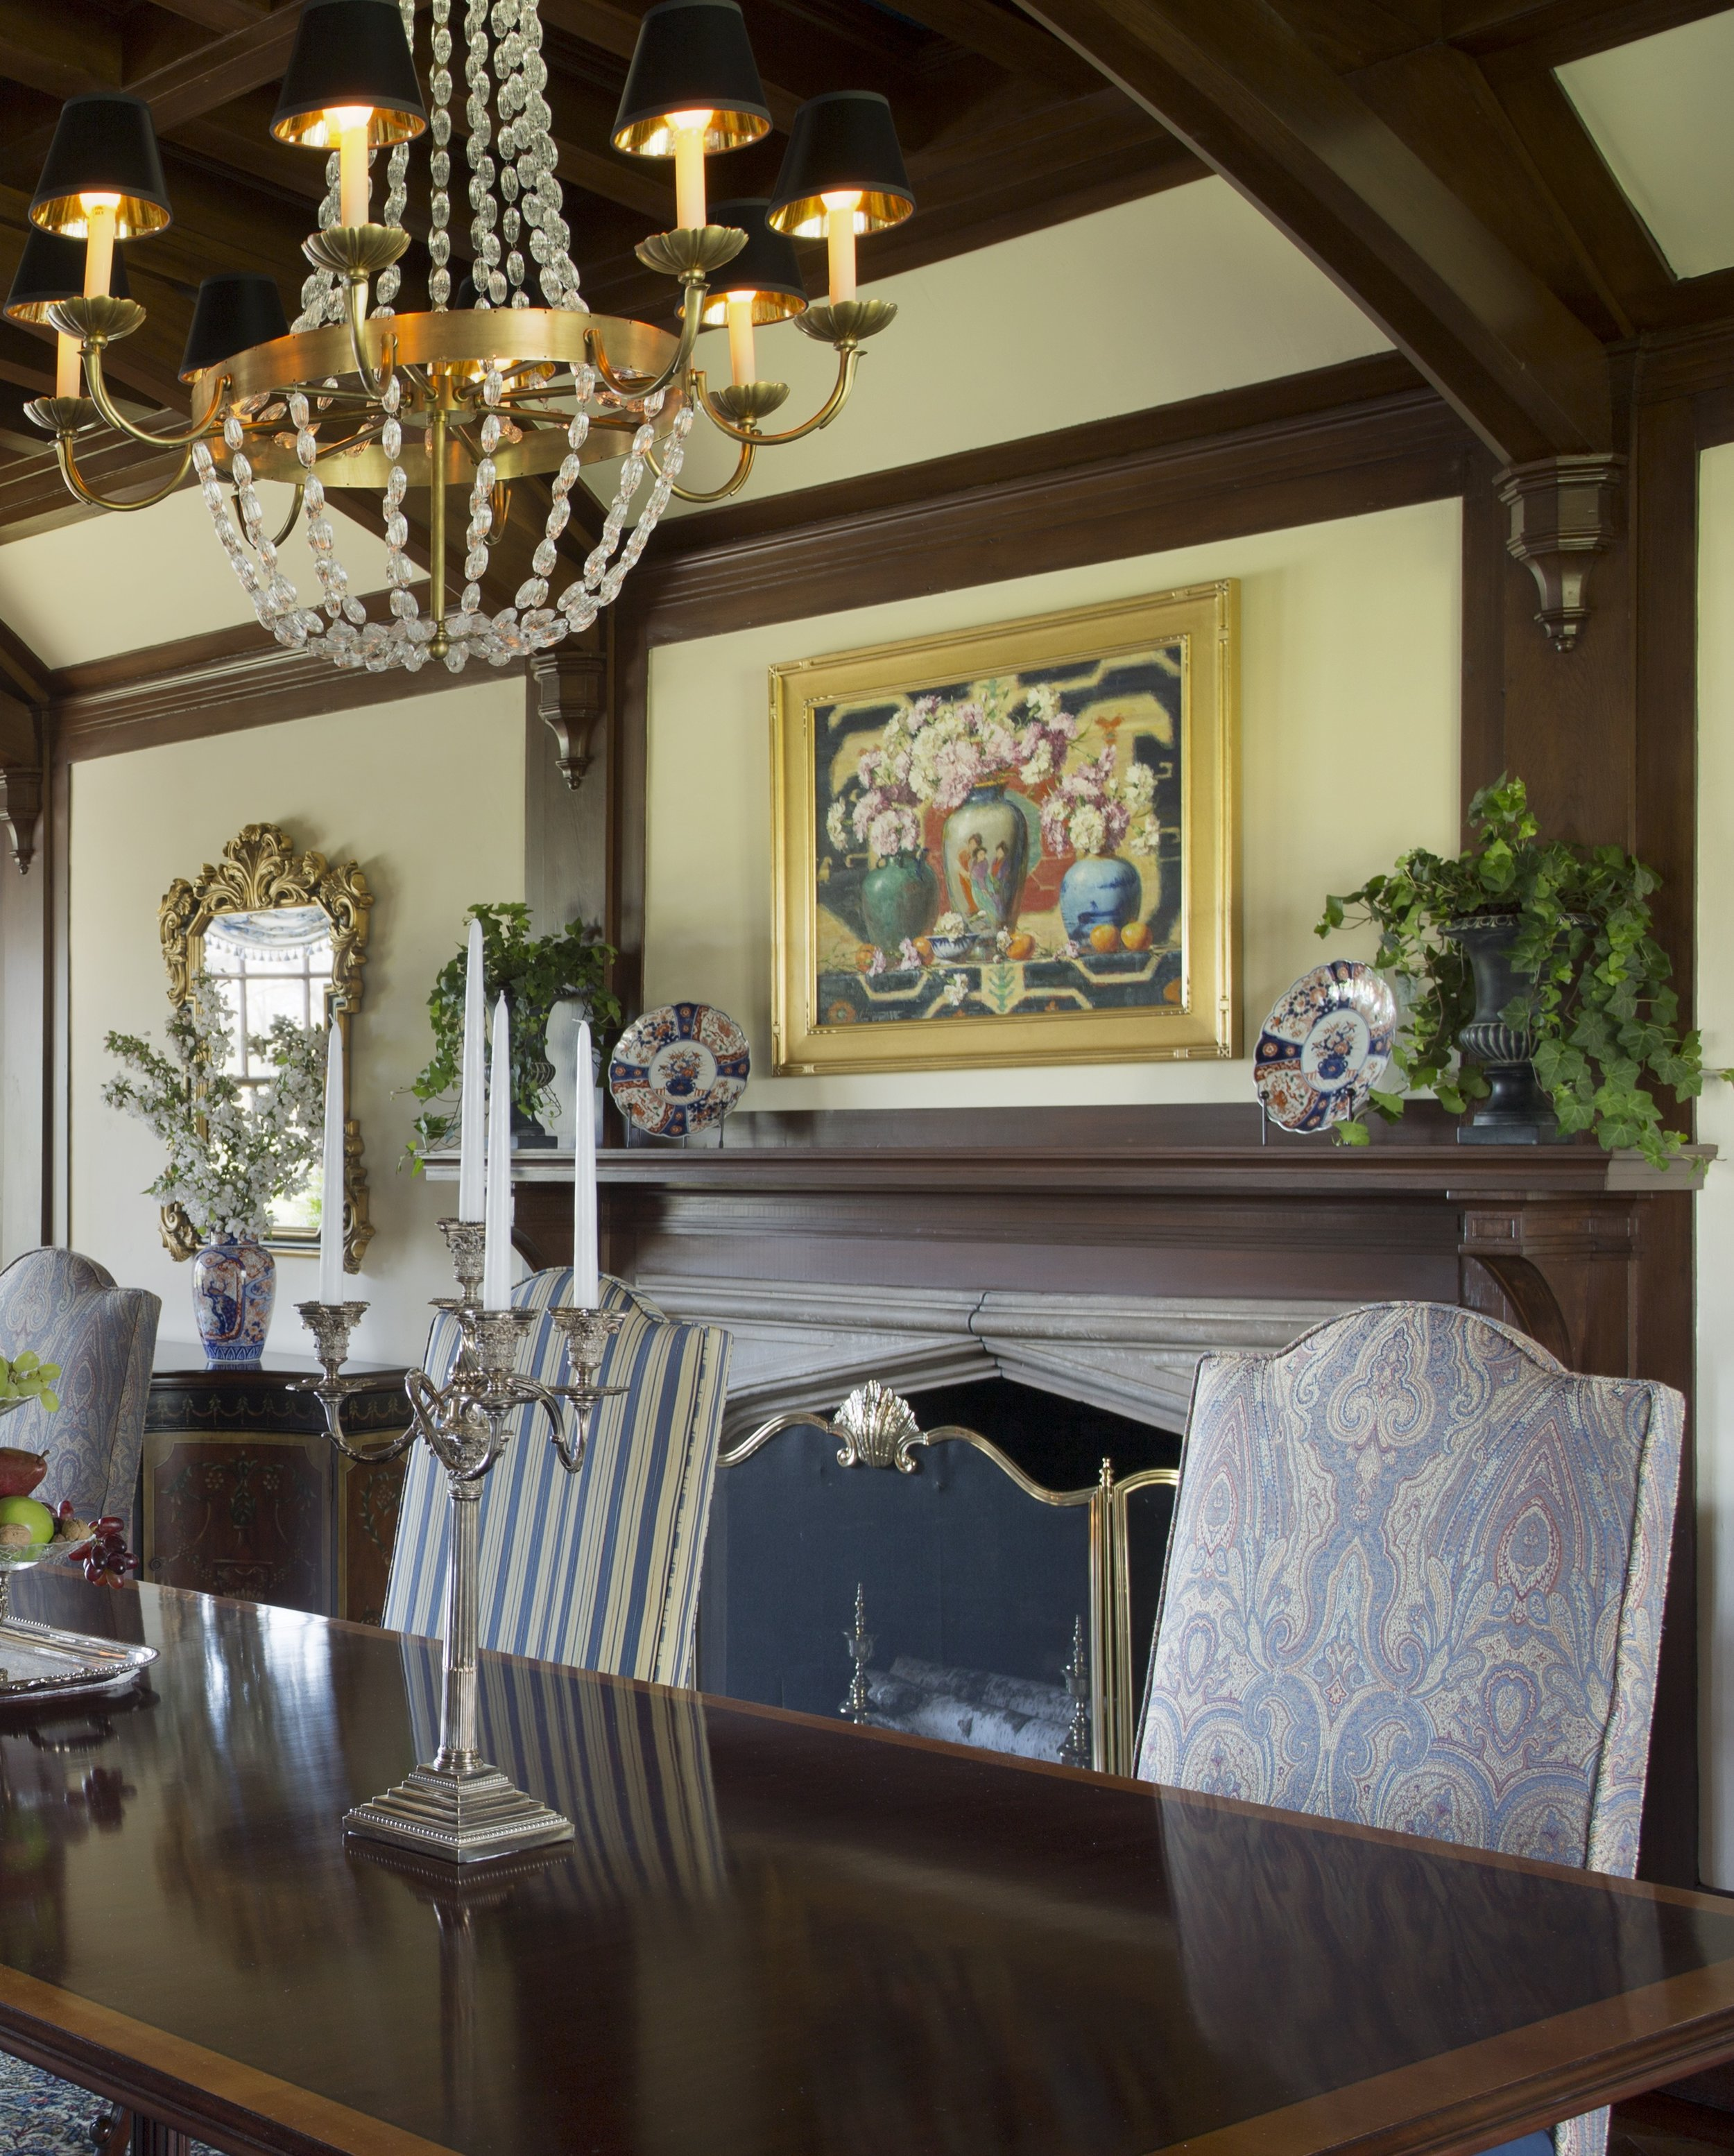 This symmetrical mantel arrangement works in this very formal dining room. The symmetry continues along the wall with matching pairs of painted cabinets topped with floral arrangements in front of gilded mirrors on either side of the fireplace. The dining table holds another symmetrical arrangement with an antique silver epergne flanked by candelabra.